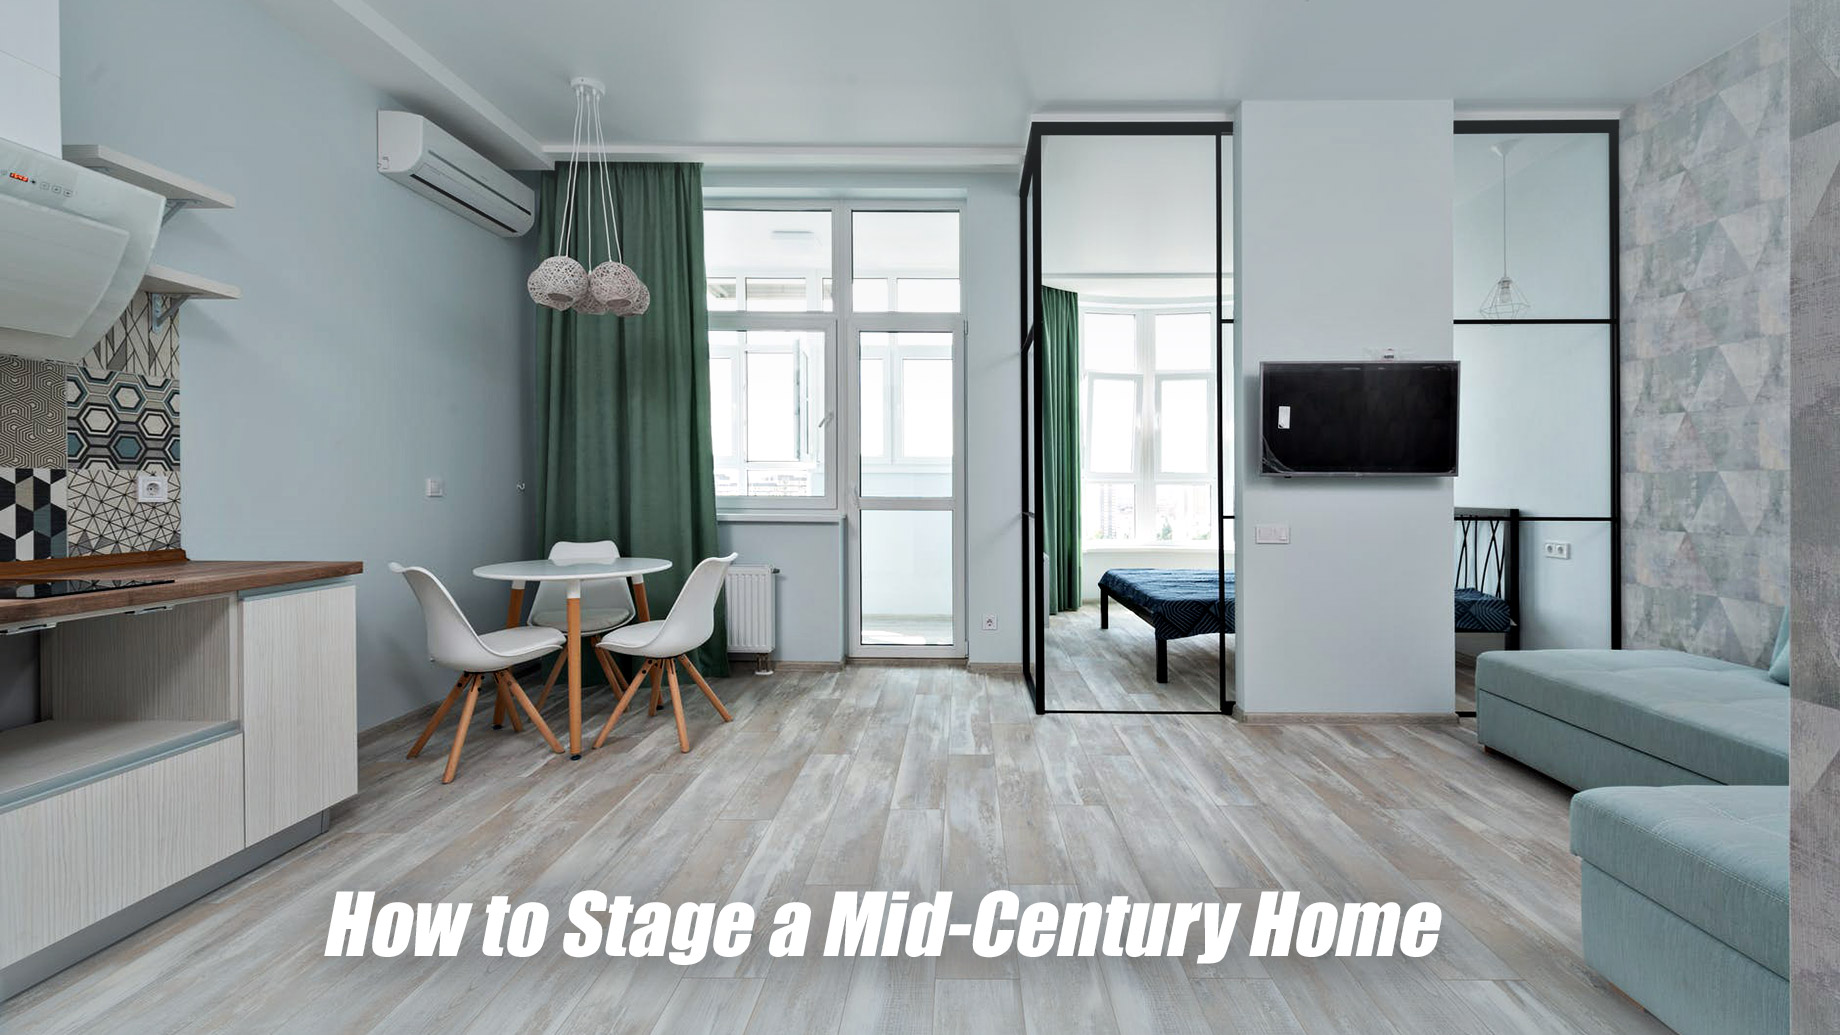 How to Stage a Mid-Century Home